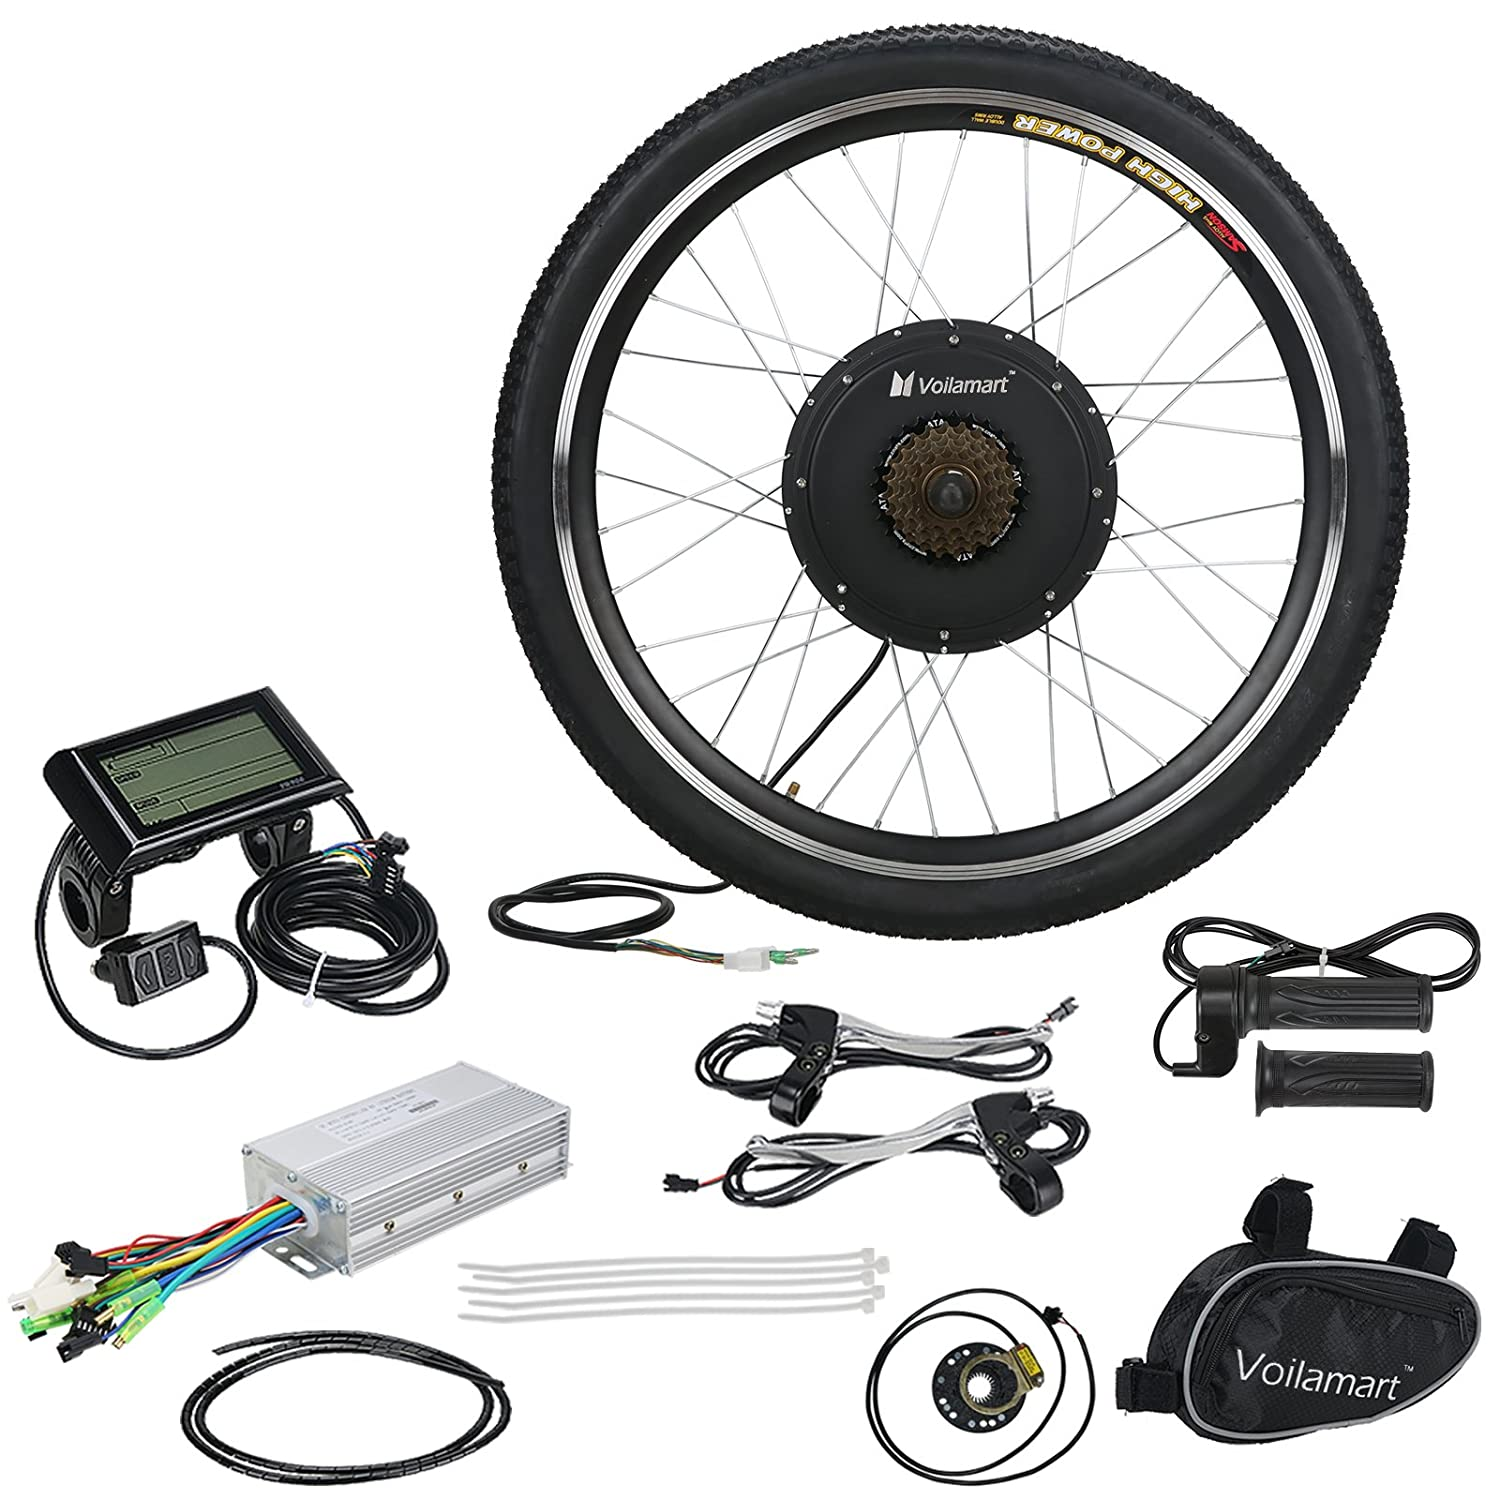 Voilamart 48v 1000w Electric Bicycle Conversion Kit 26 Rear Wheel Go Back Gt Gallery For Brushless Motor Diagram E Bike With Lcd Display And Intelligent Controller Car Motorbike